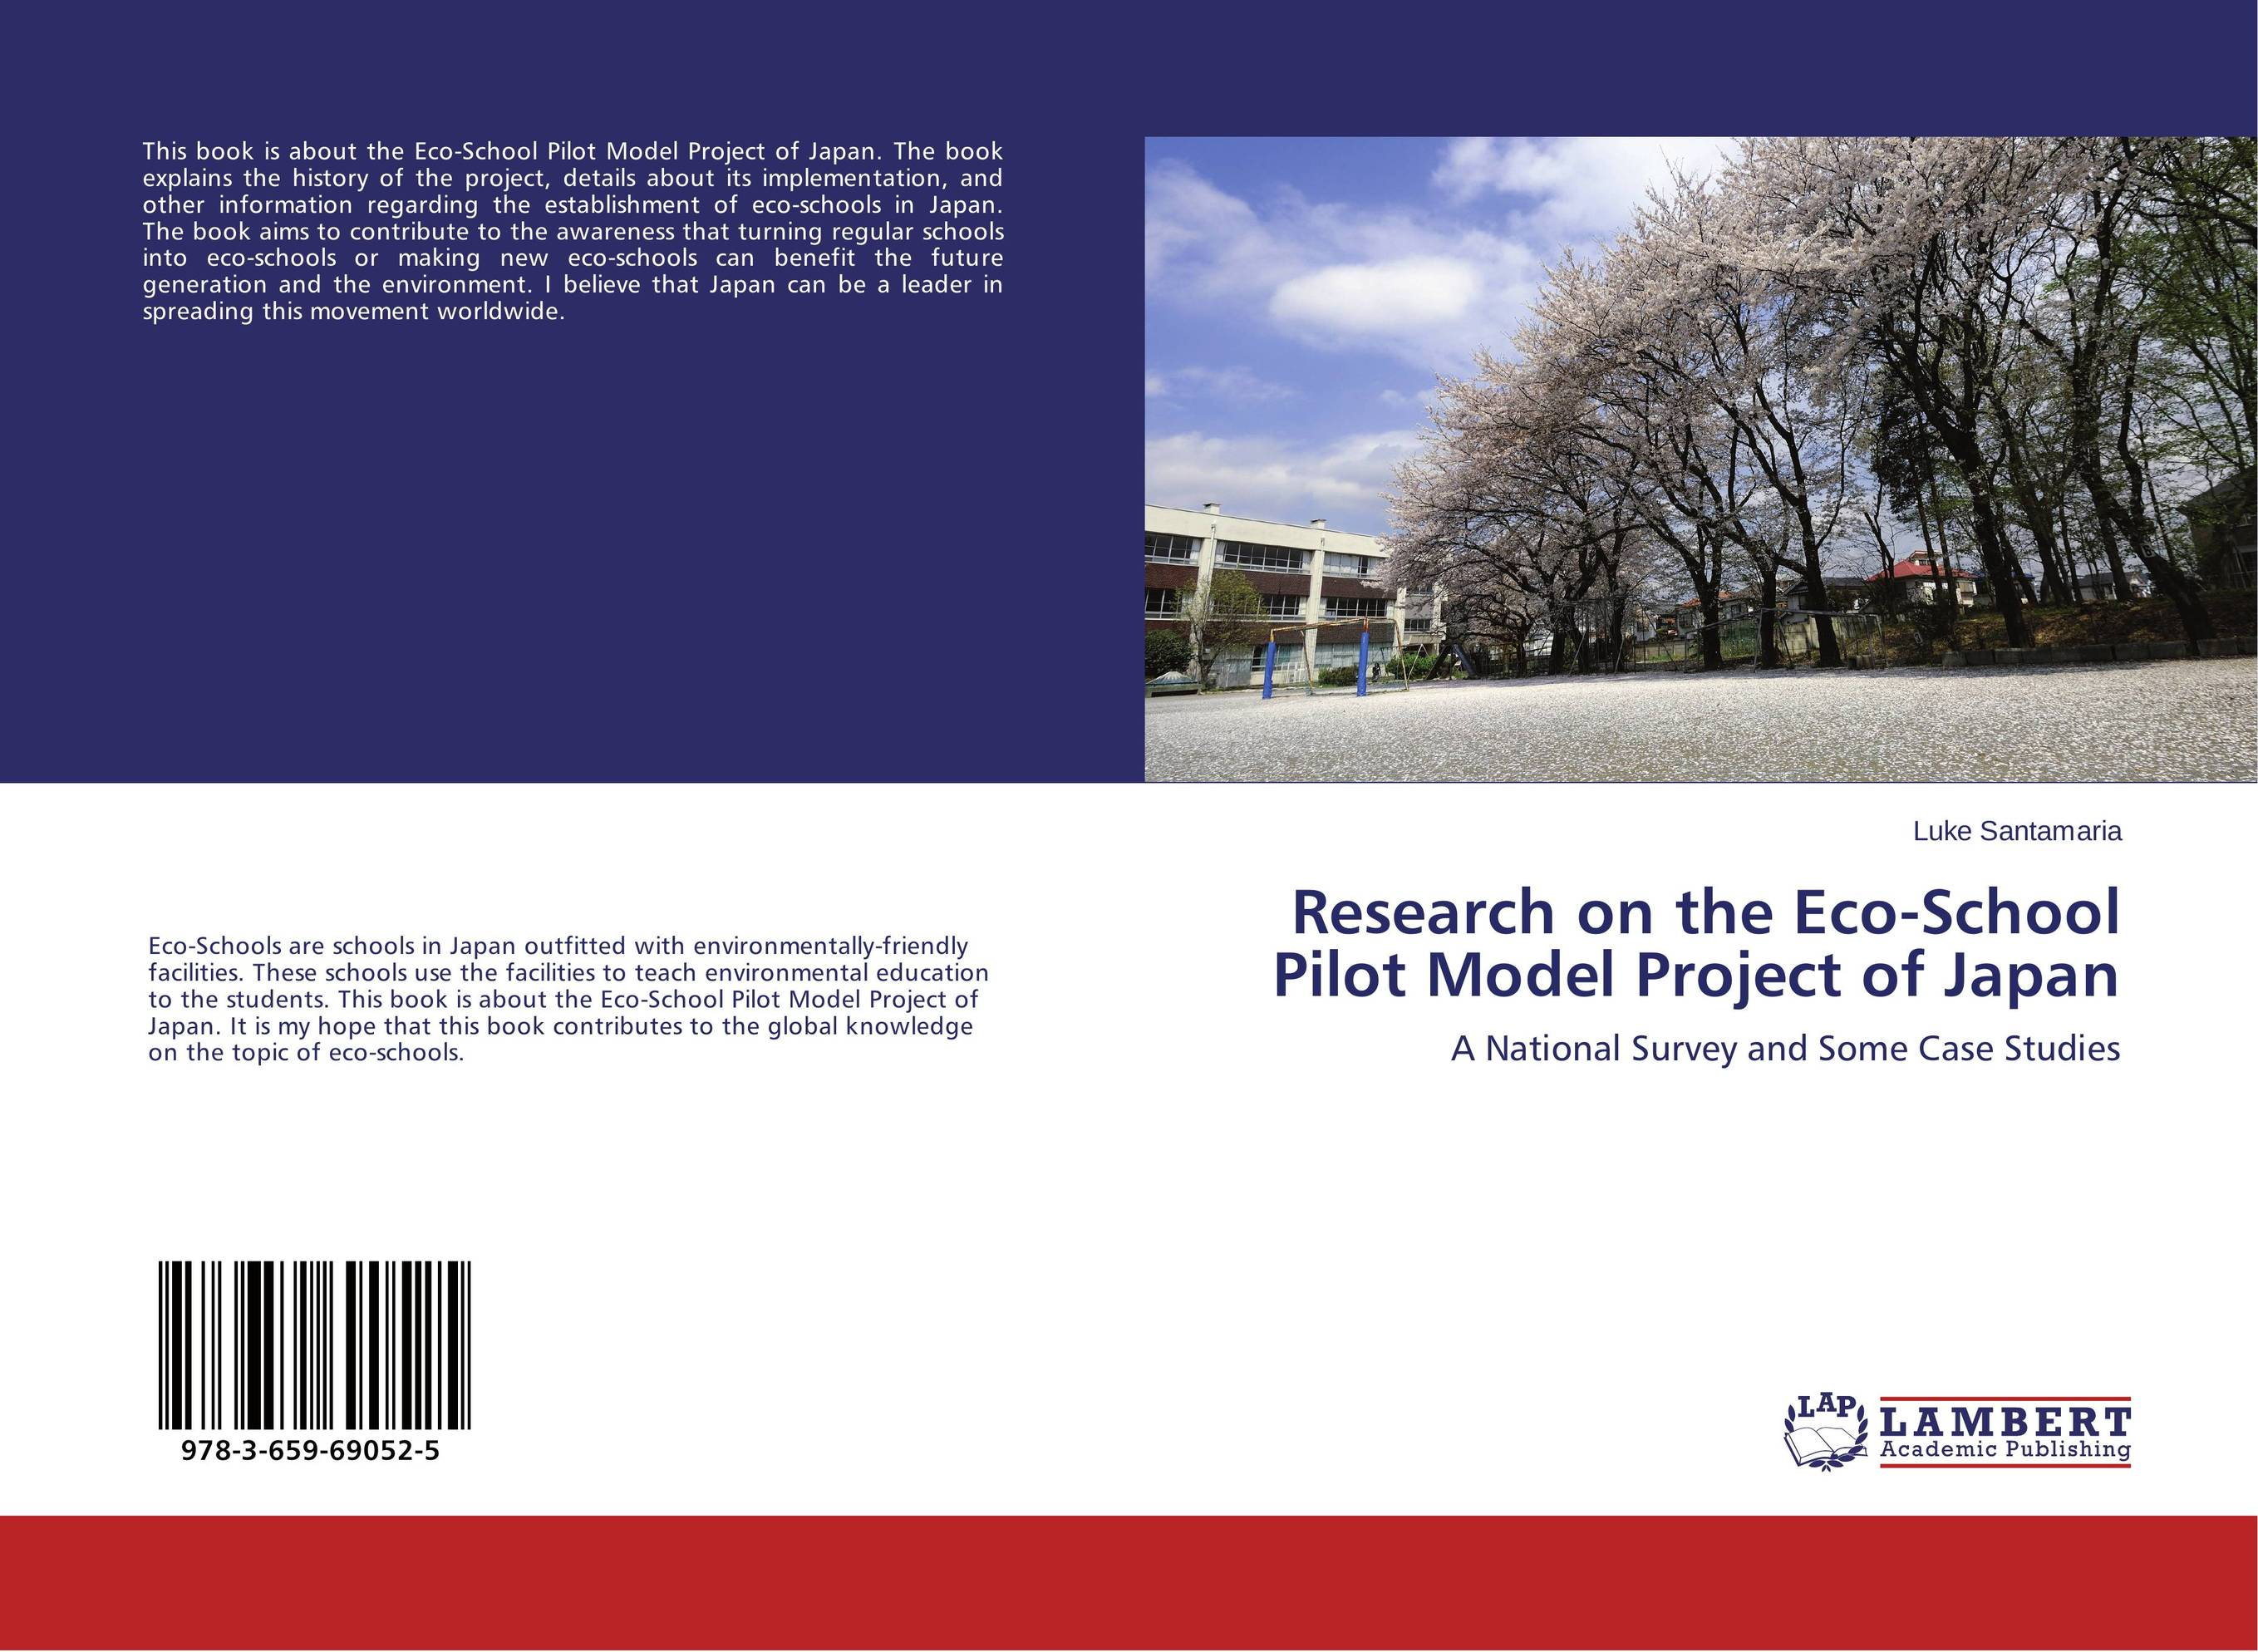 Research on the Eco-School Pilot Model Project of Japan